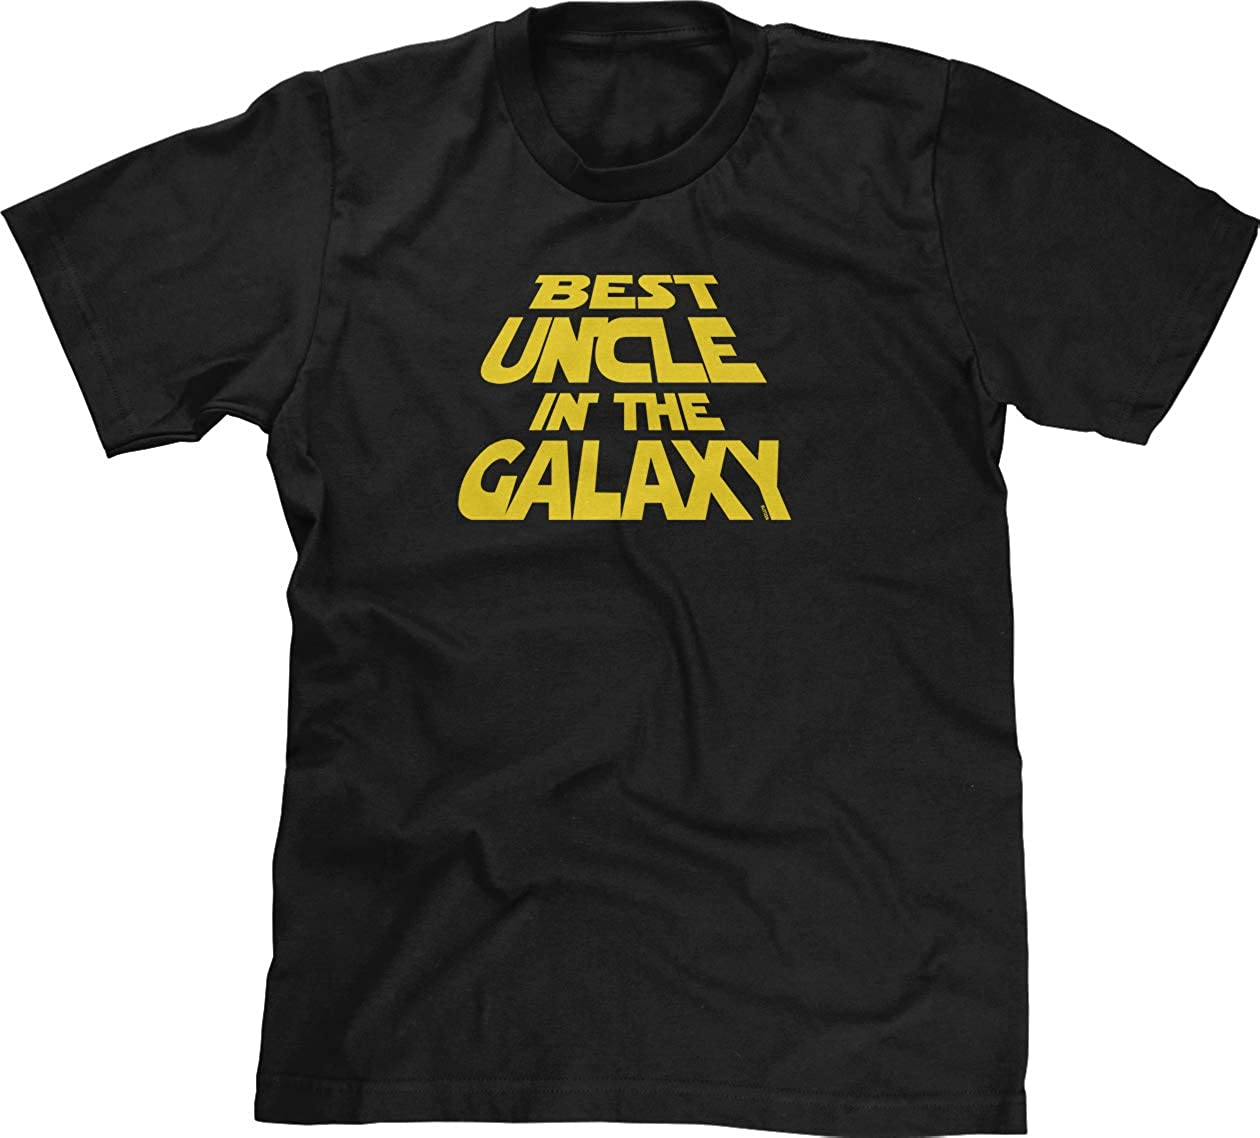 Best Uncle in Max 52% OFF The T-Shirt Galaxy Spring new work one after another Mens